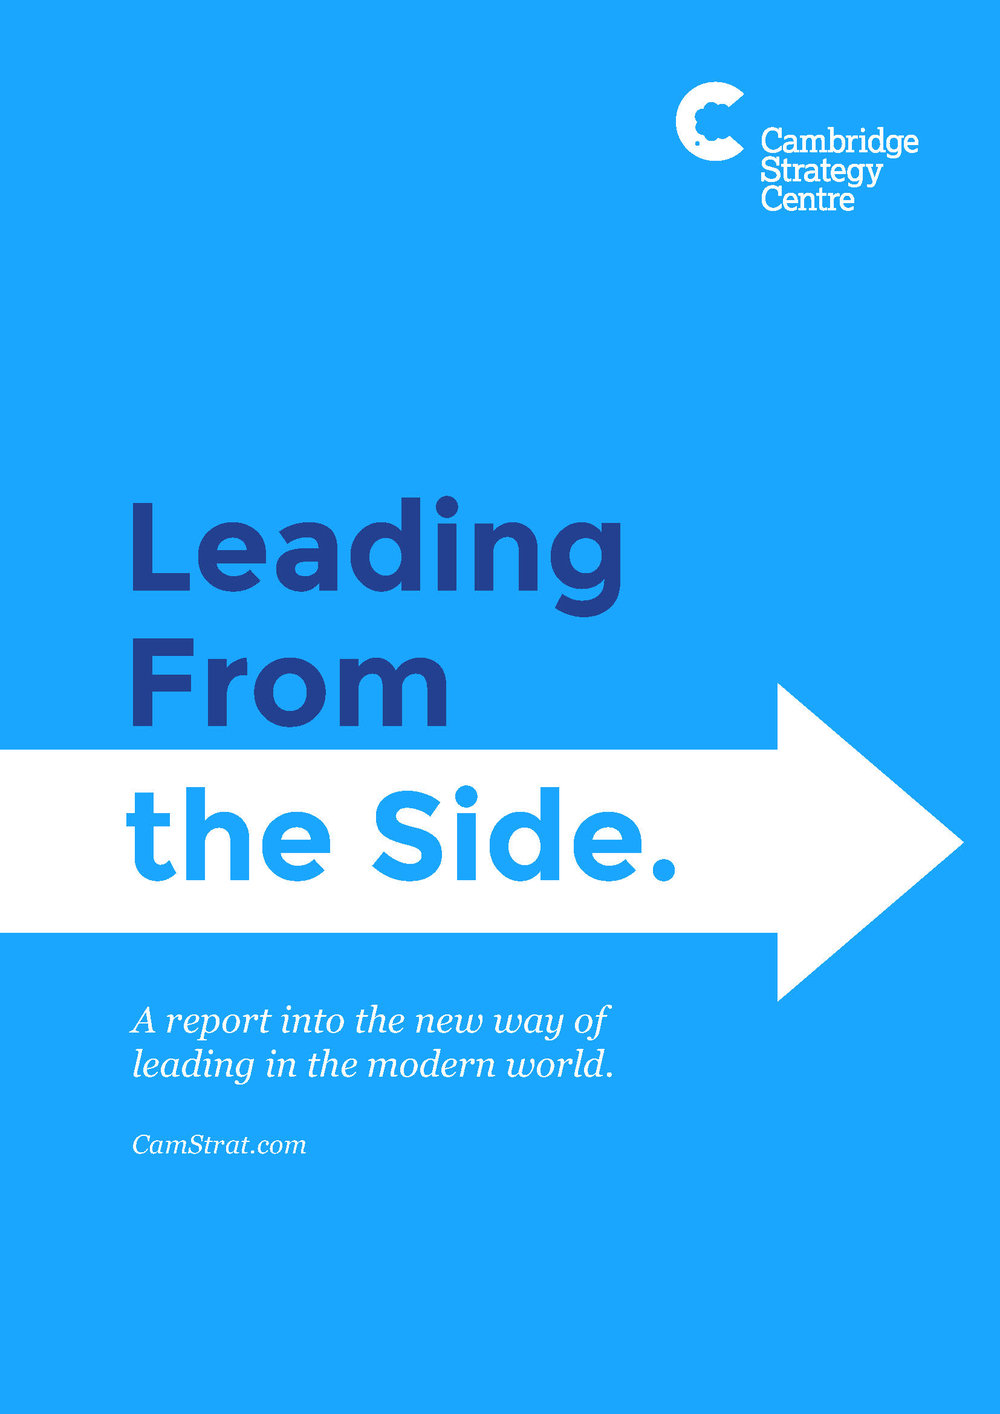 A report into the new way of leading in the modern world -